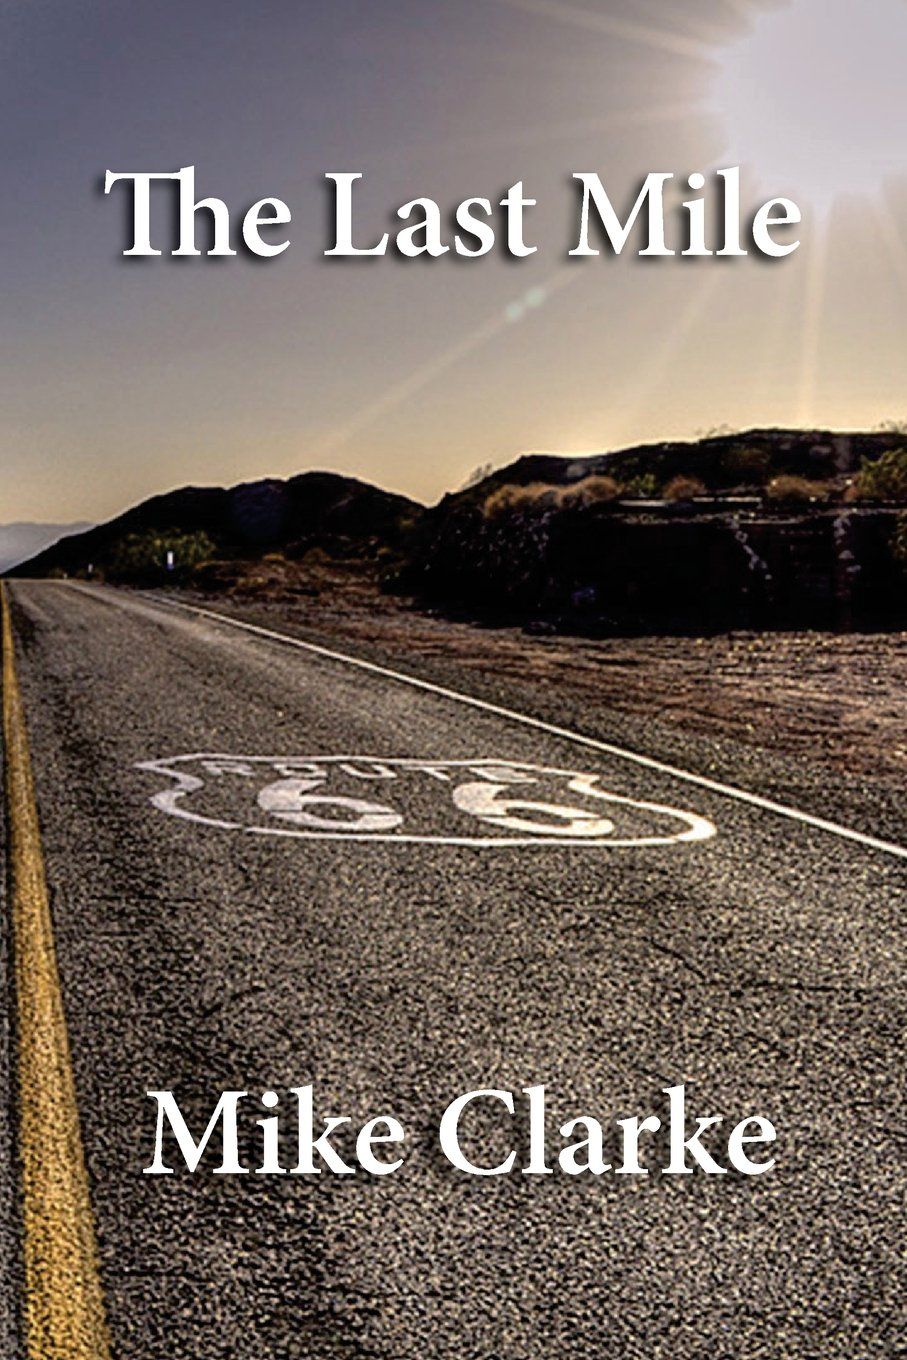 Download Route 66: The Last Mile pdf